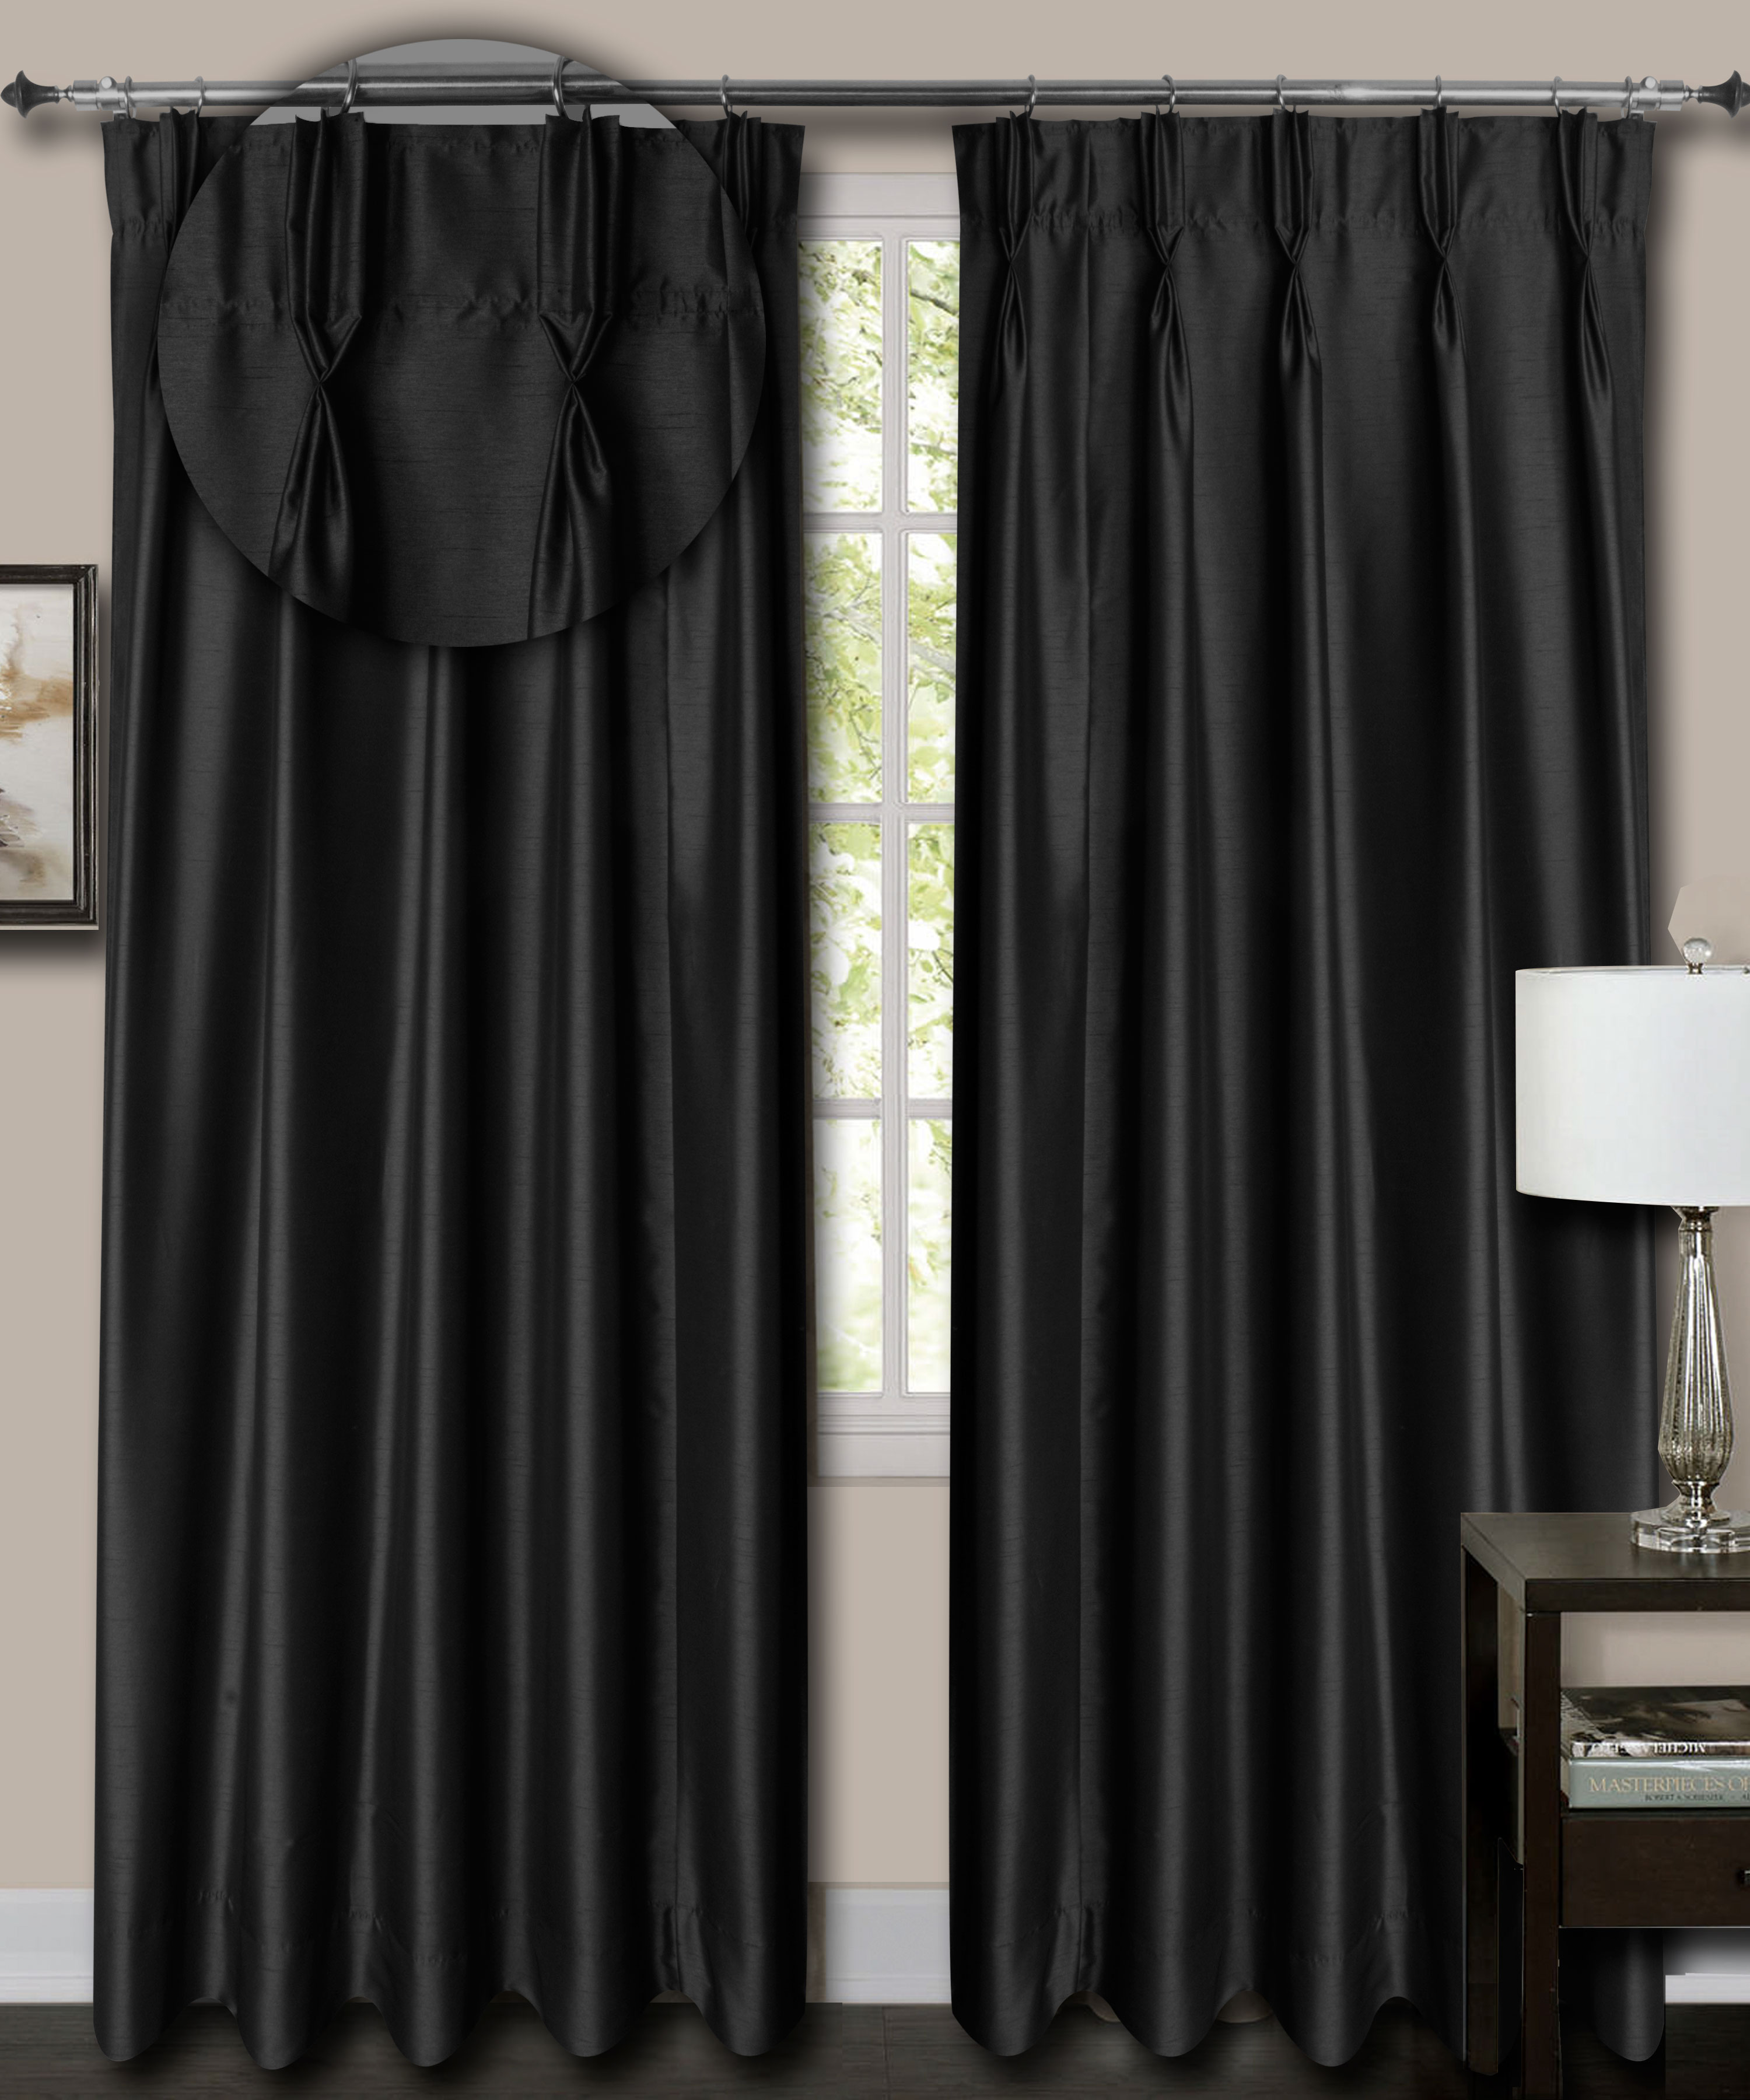 """French Pleat Top Black Faux Silk Dupioni Curtains. (39"""" Wide,15 Feet Long,Blackout Lining)"""